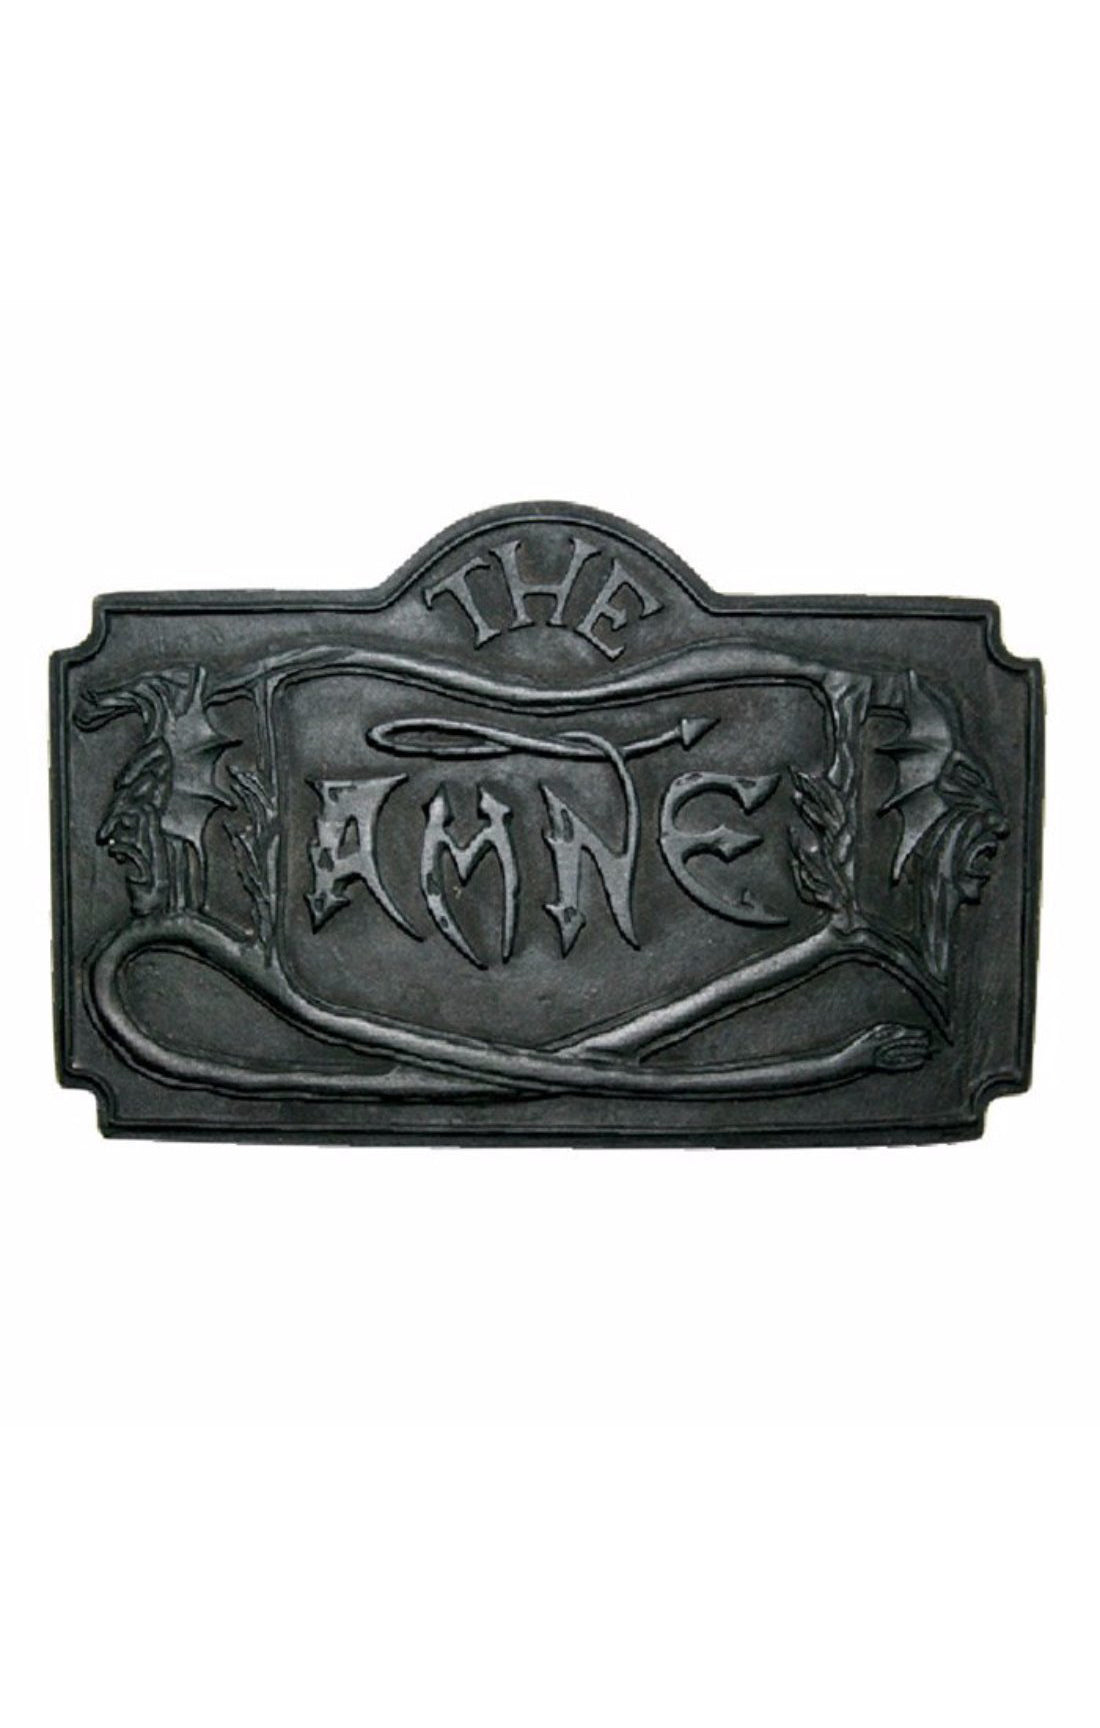 The DAMNED Belt Buckle